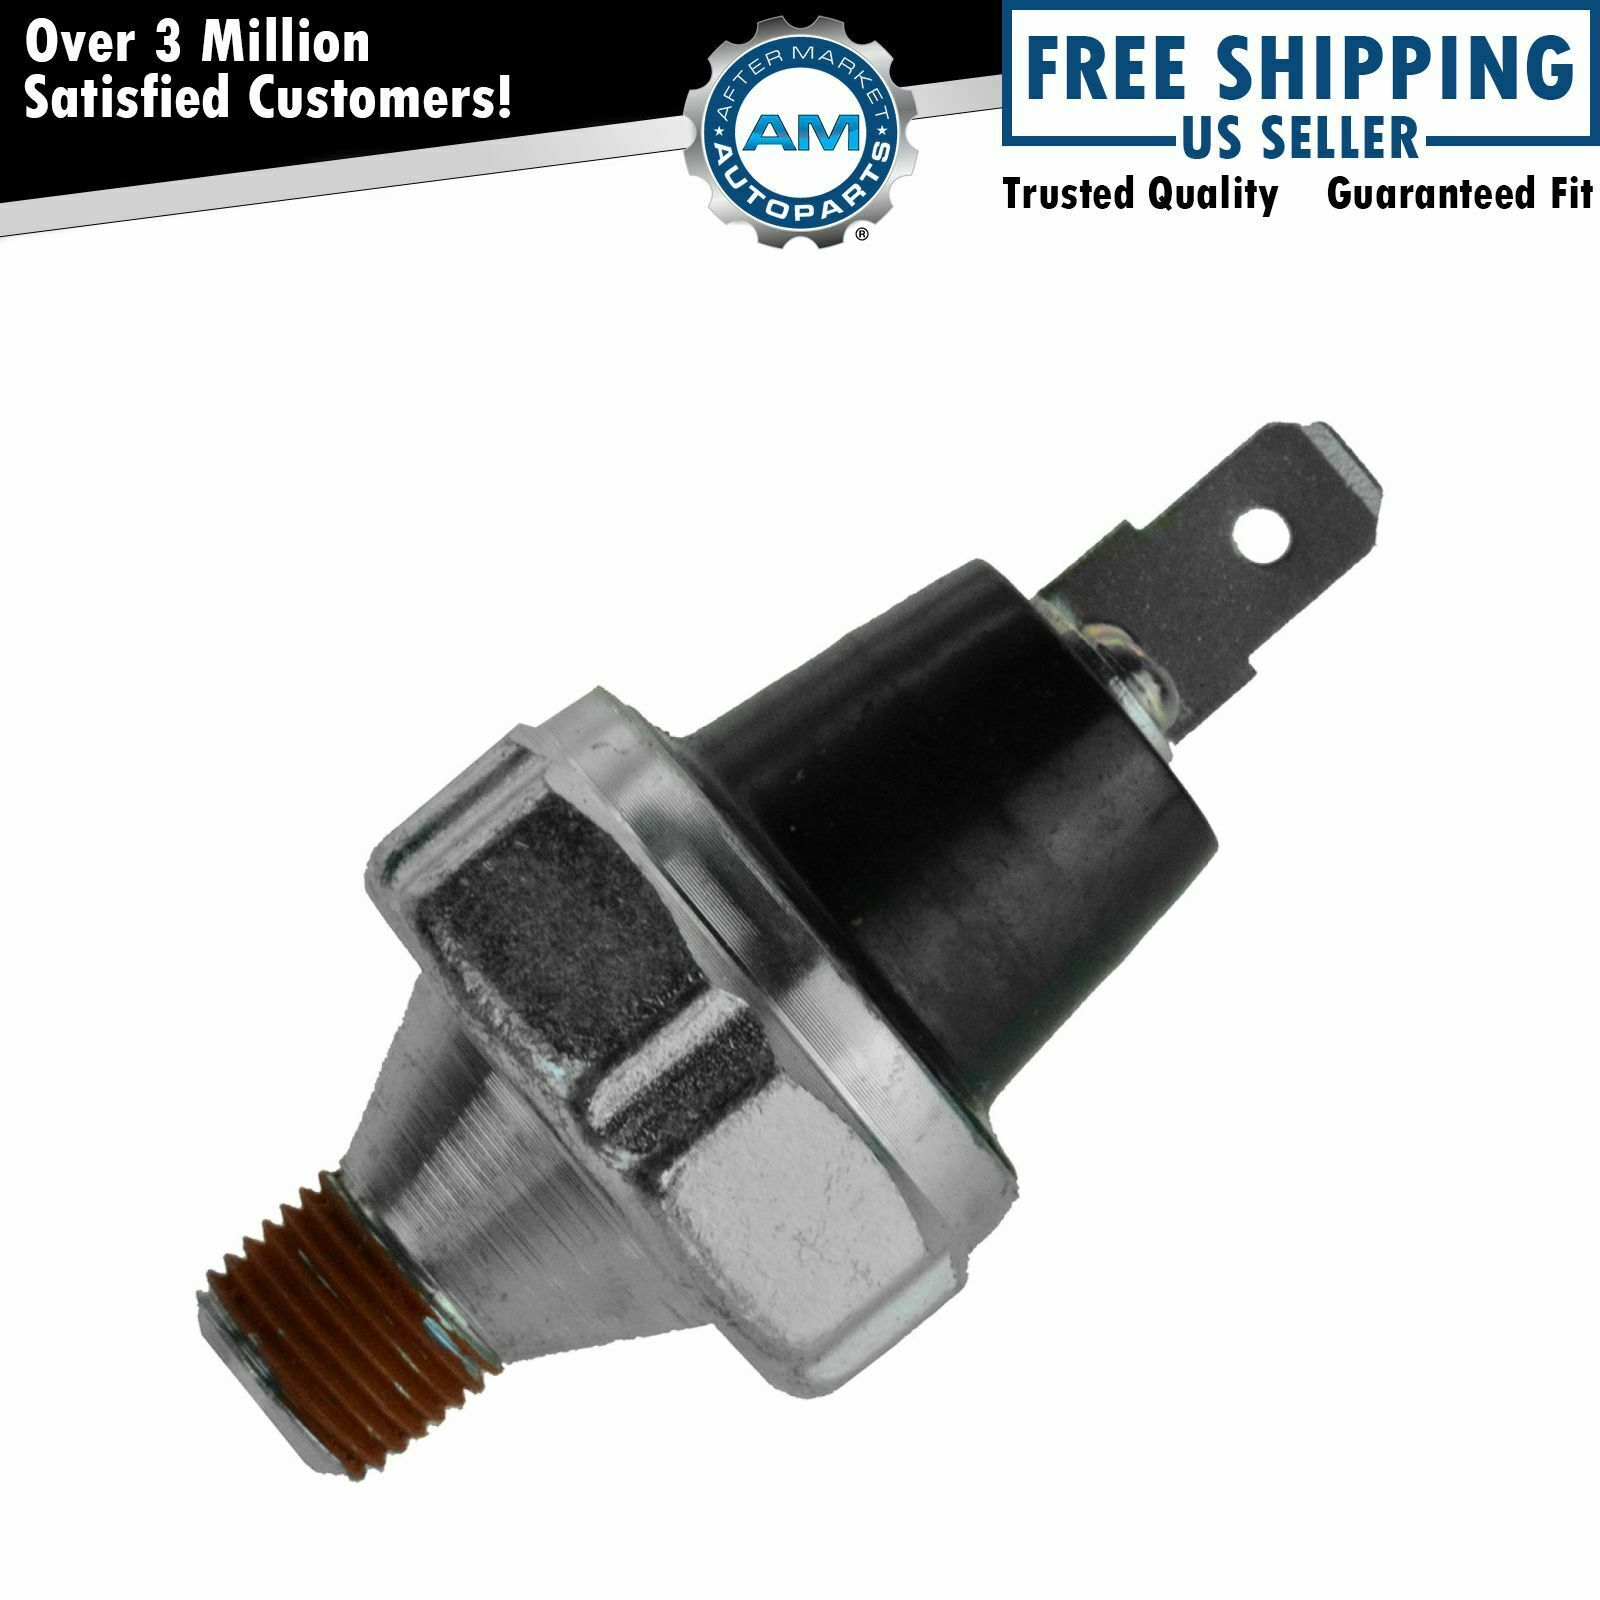 Oil Pressure Sensor Sender Switch For Chevy Dodge Ford Honda Kia Maxima Wiring Harness 1 Of 2only 5 Available